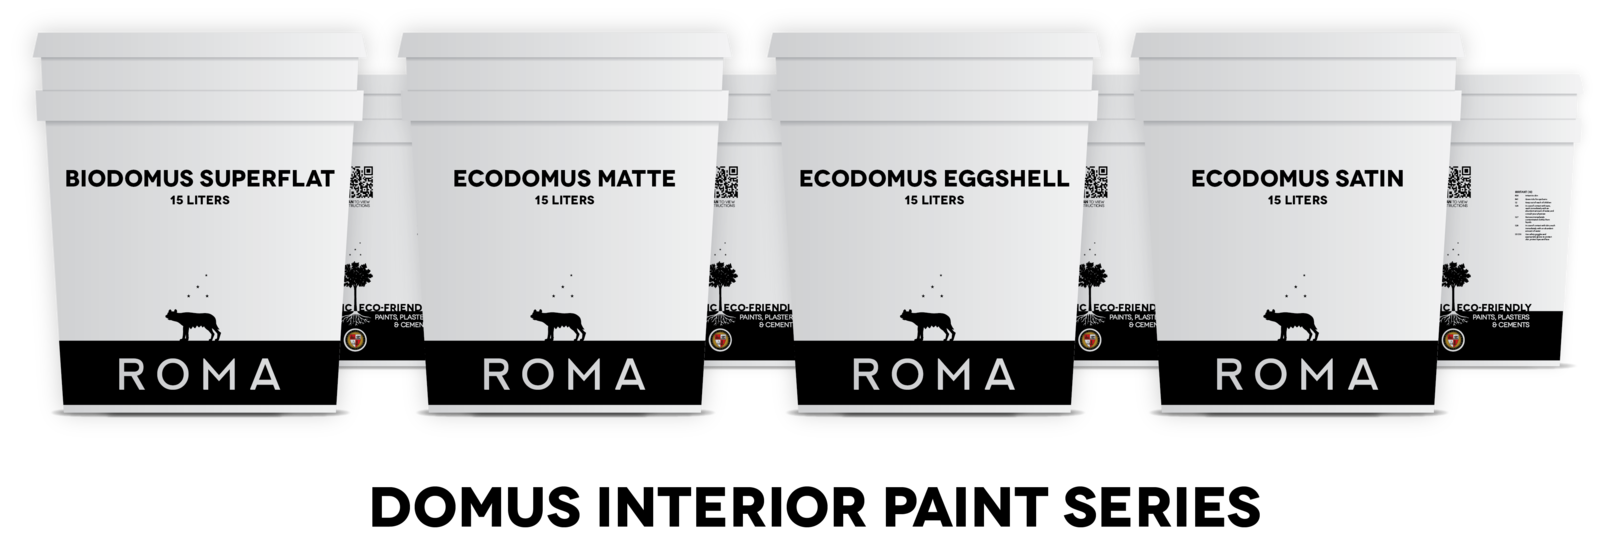 ROMA's Domus Mineral Paints are made from natural materials and are free of toxic chemicals and asthmagens.  Photo 4 of 4 in Contest Spotlights Four Innovative Sustainable Building Materials